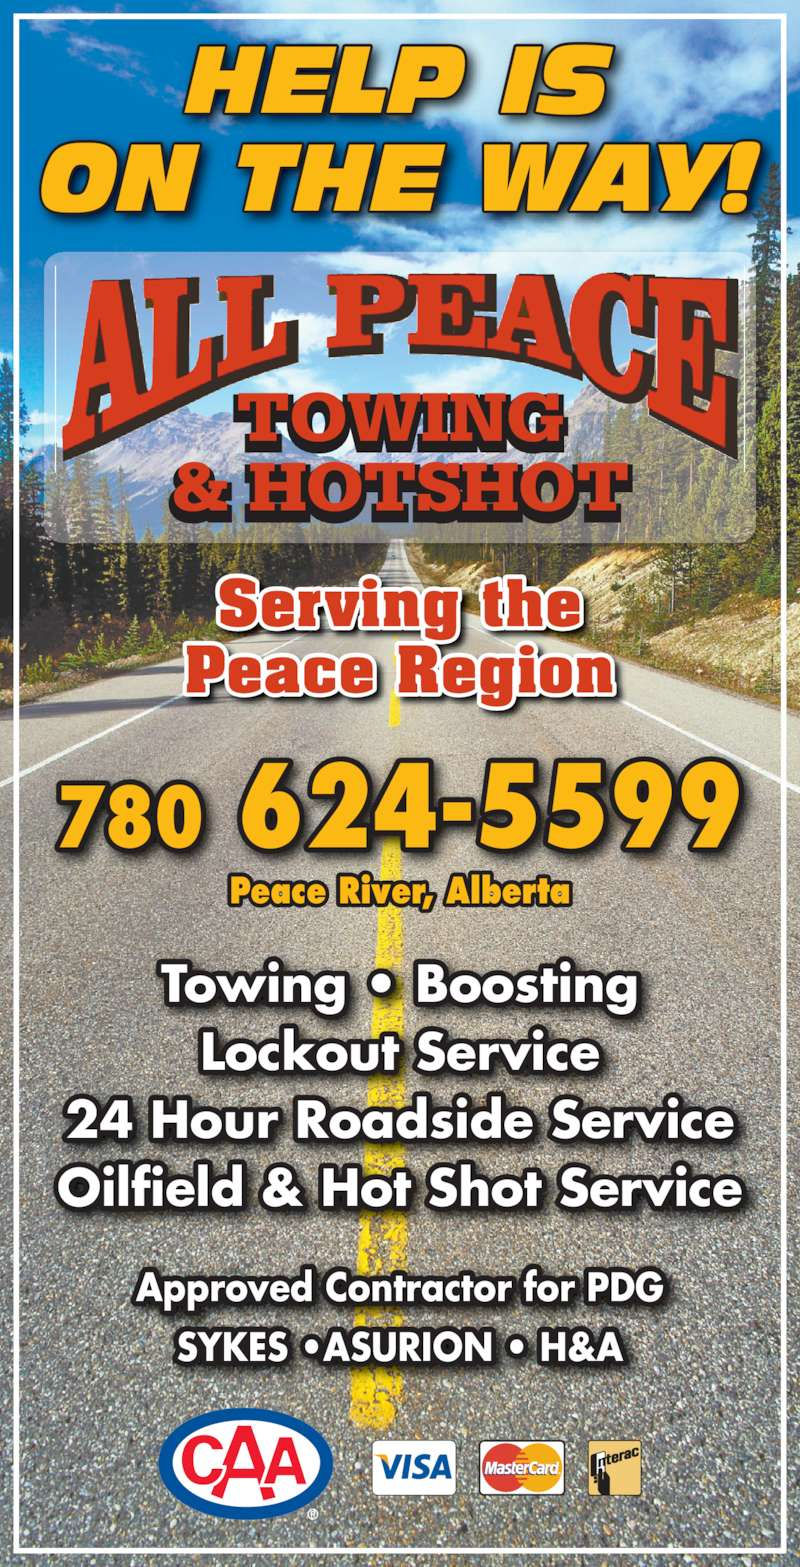 All Peace Towing & Hotshot (780-624-5599) - Display Ad - TOWING & HOTSHOT Serving the Peace Region 780 624-5599 Peace River, Alberta Towing • Boosting Lockout Service 24 Hour Roadside Service Oilfield & Hot Shot Service Approved Contractor for PDG SYKES •ASURION • H&A HELP IS ON THE WAY!